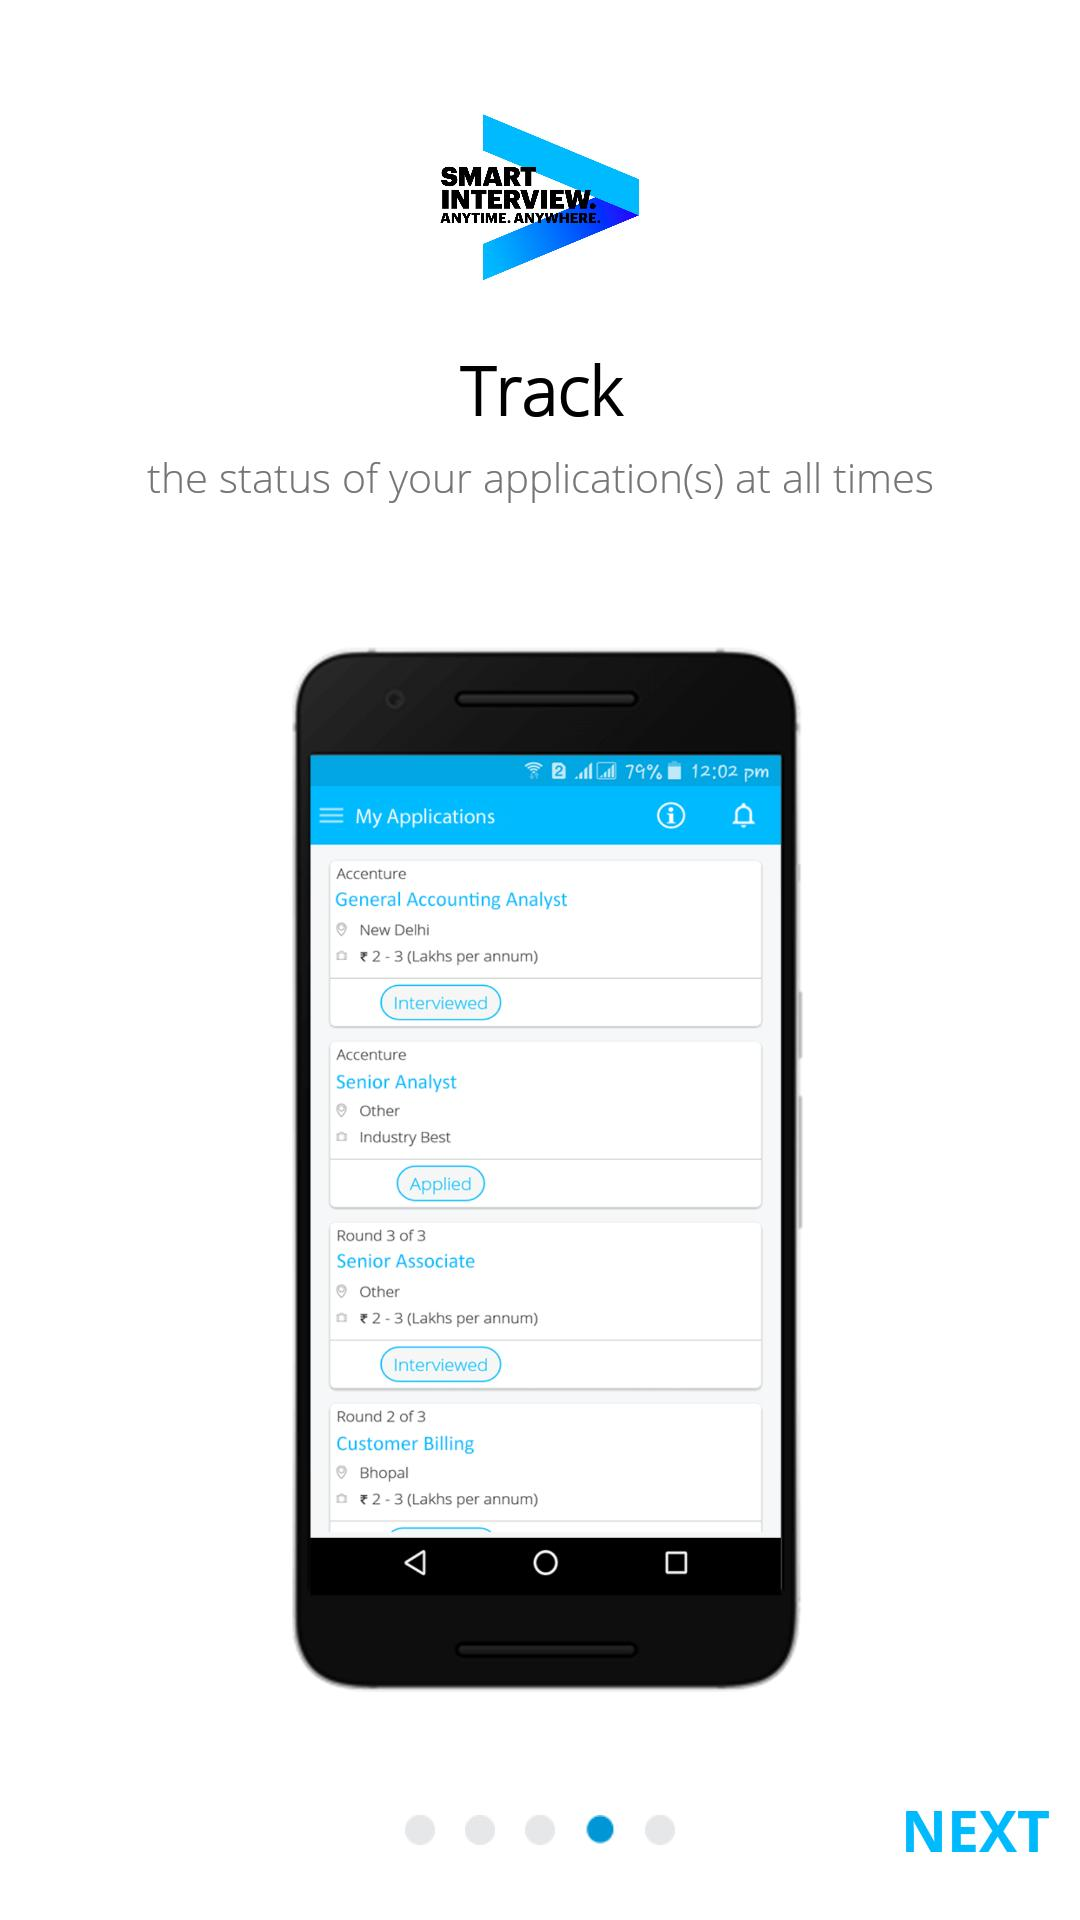 Accenture Smart Interview for Android - APK Download